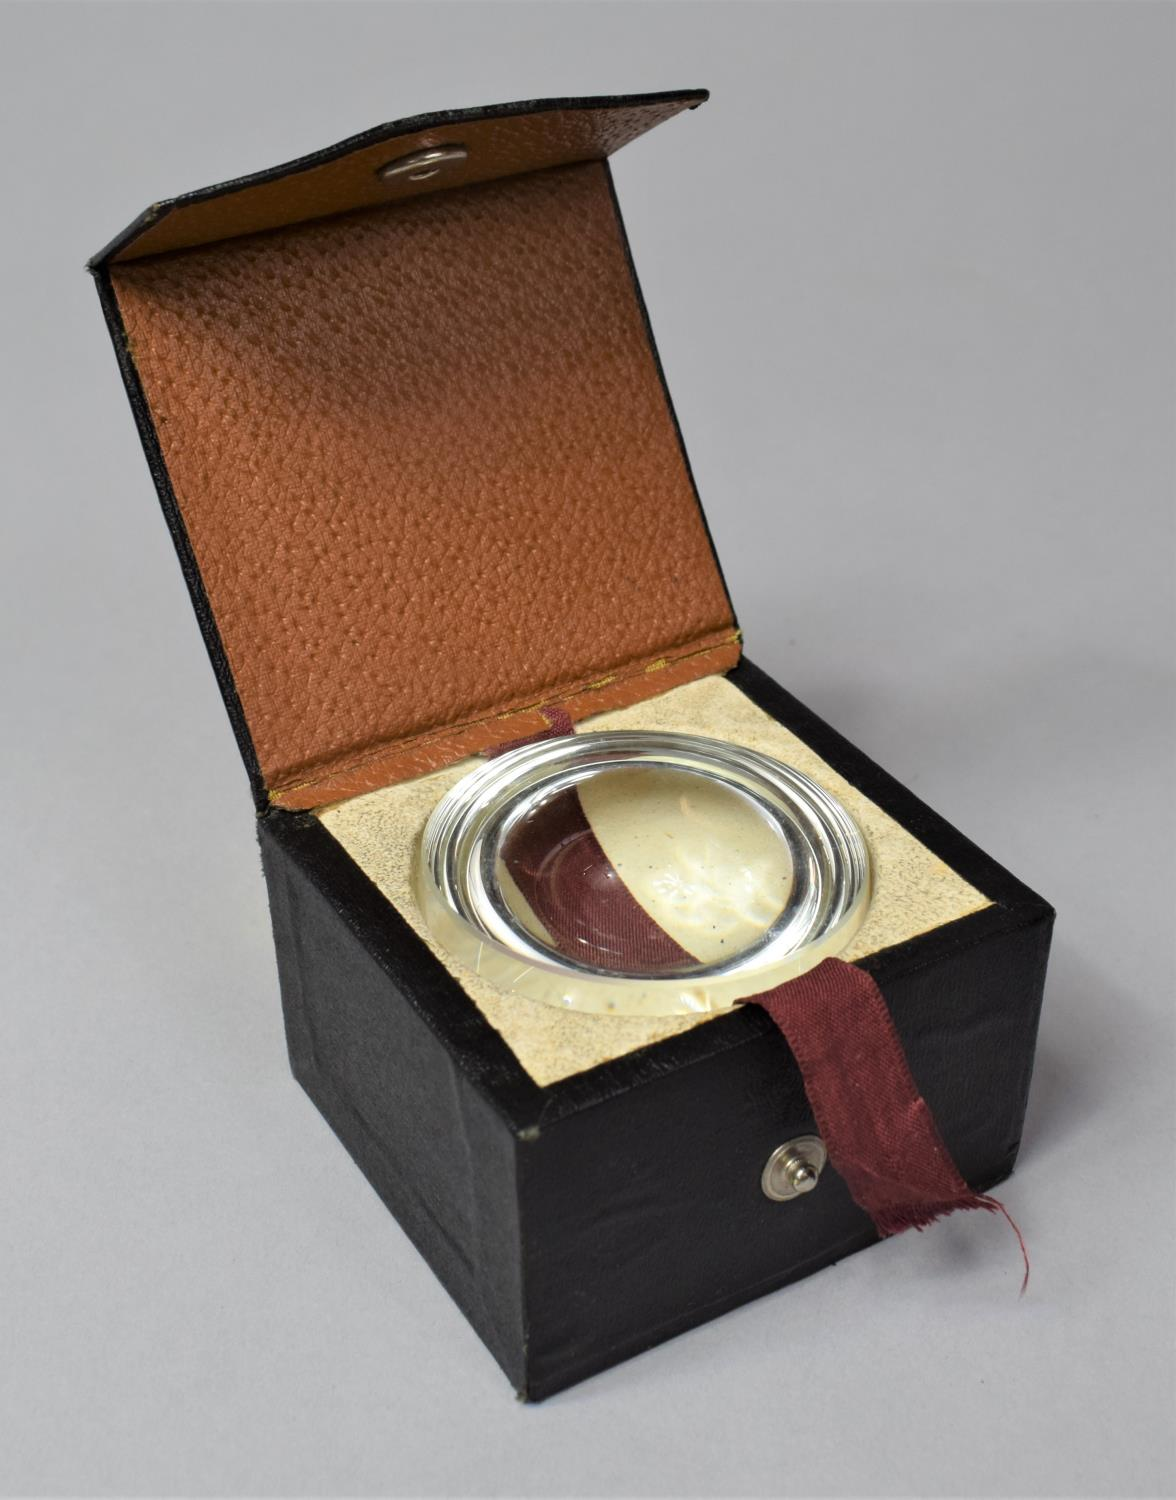 A Cased Flat Field Magnifier, 5.5cm Diameter - Image 2 of 3